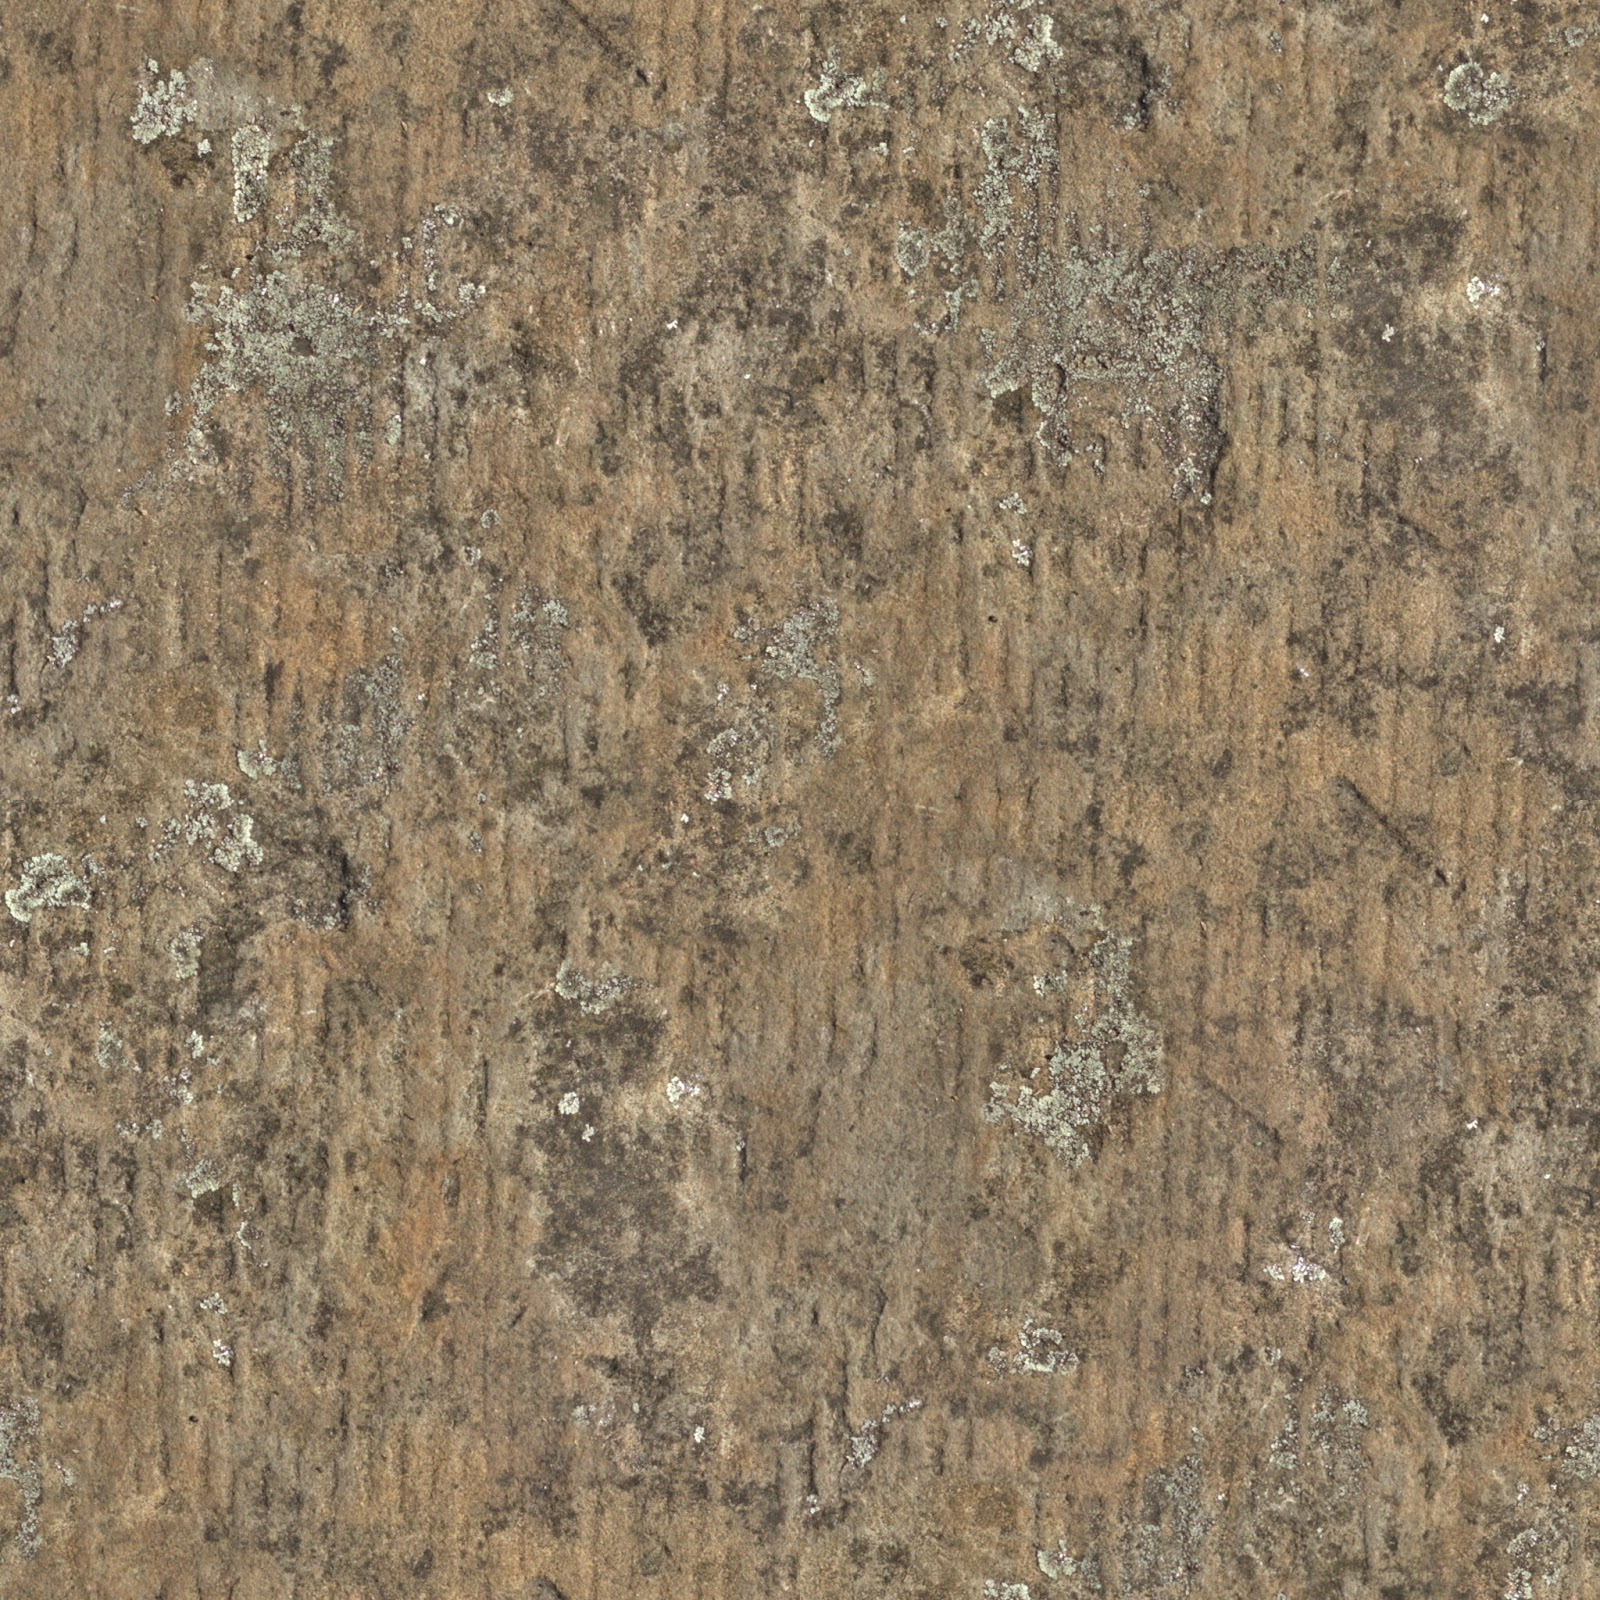 (Stone 6) rock cave mountain brown seamless texture 2048x2048